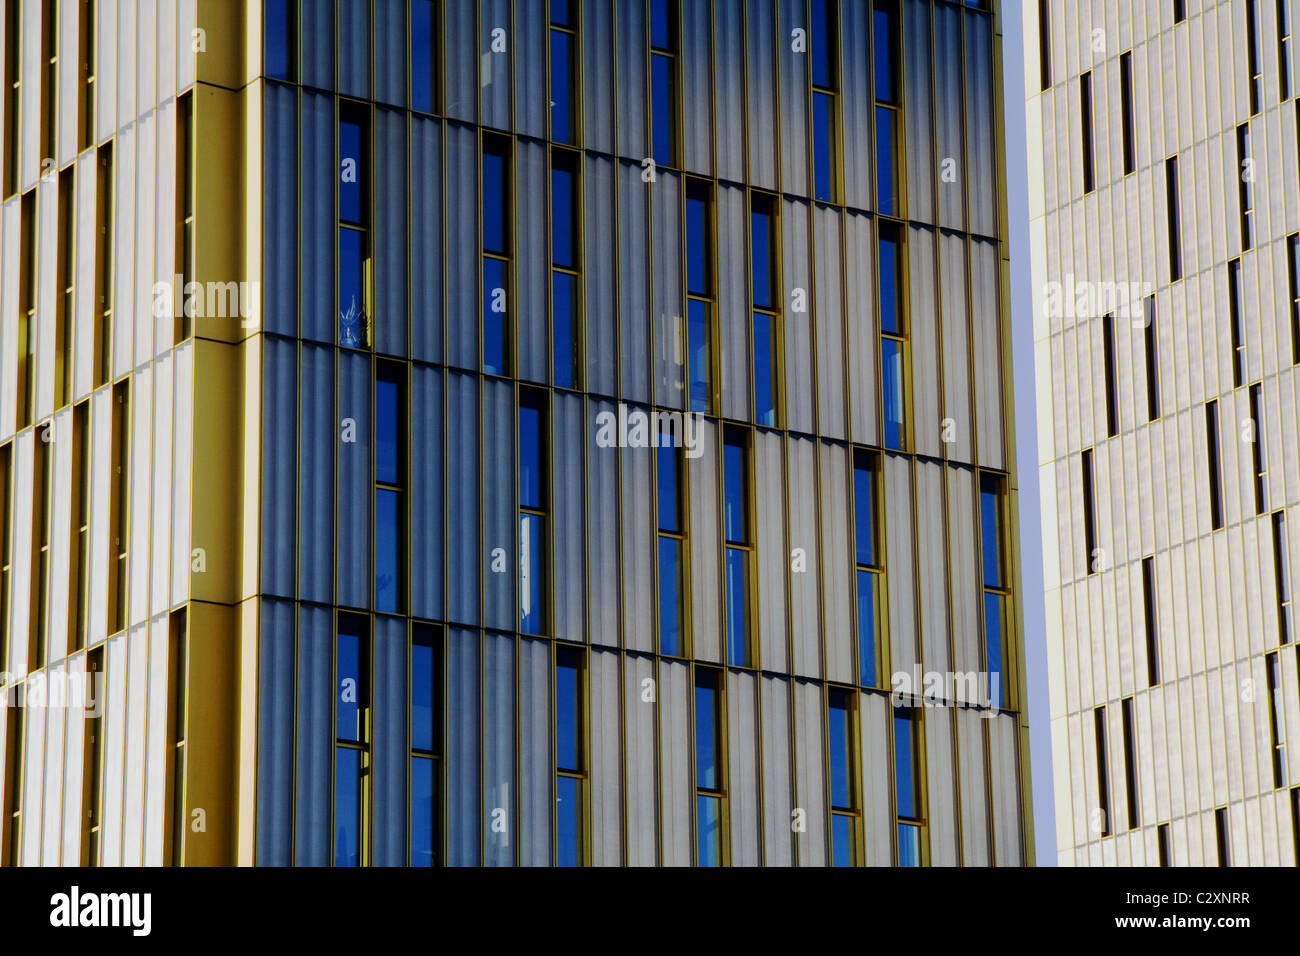 European Court of Justice - Stock Image